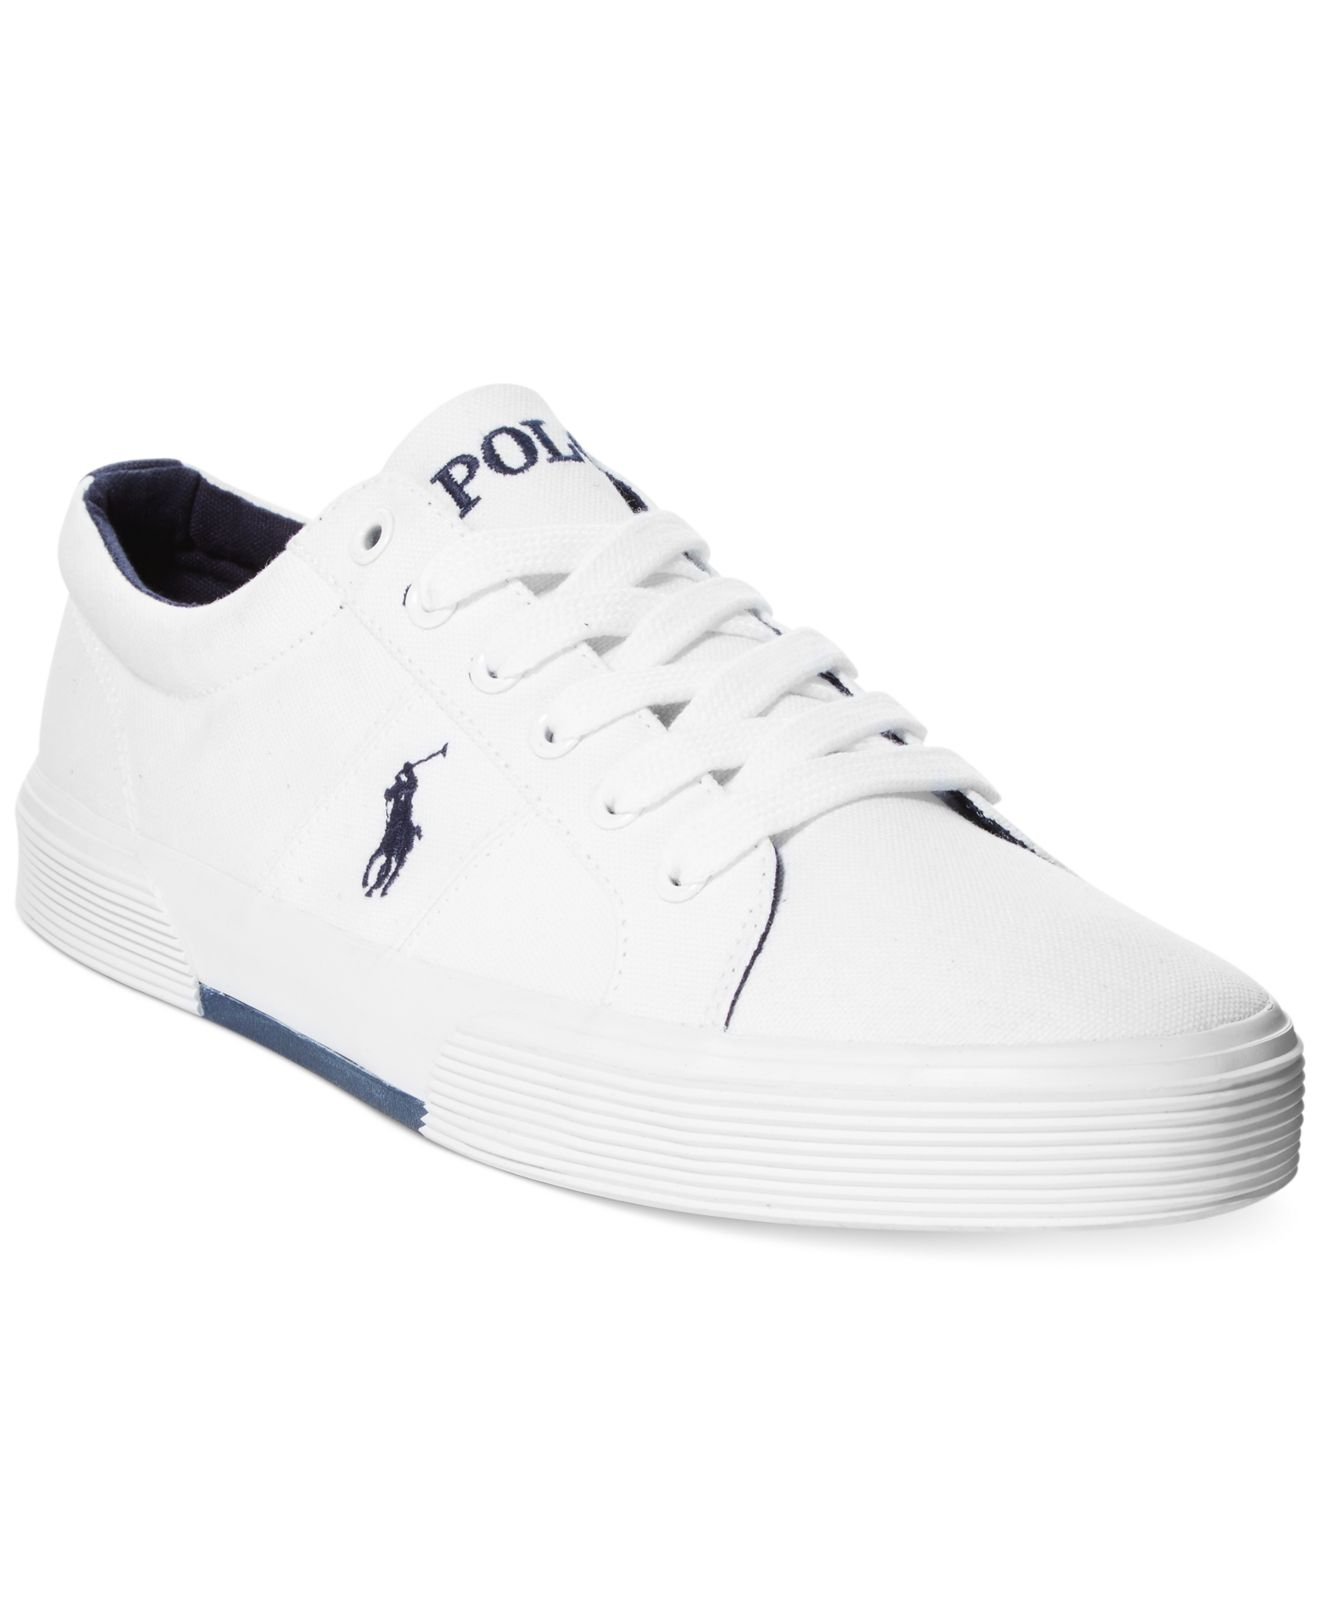 26d8fdf1dbeb8 Felix Lauren White Lyst Men Canvas For Sneakers In Polo Ralph 0pqwxHwEt